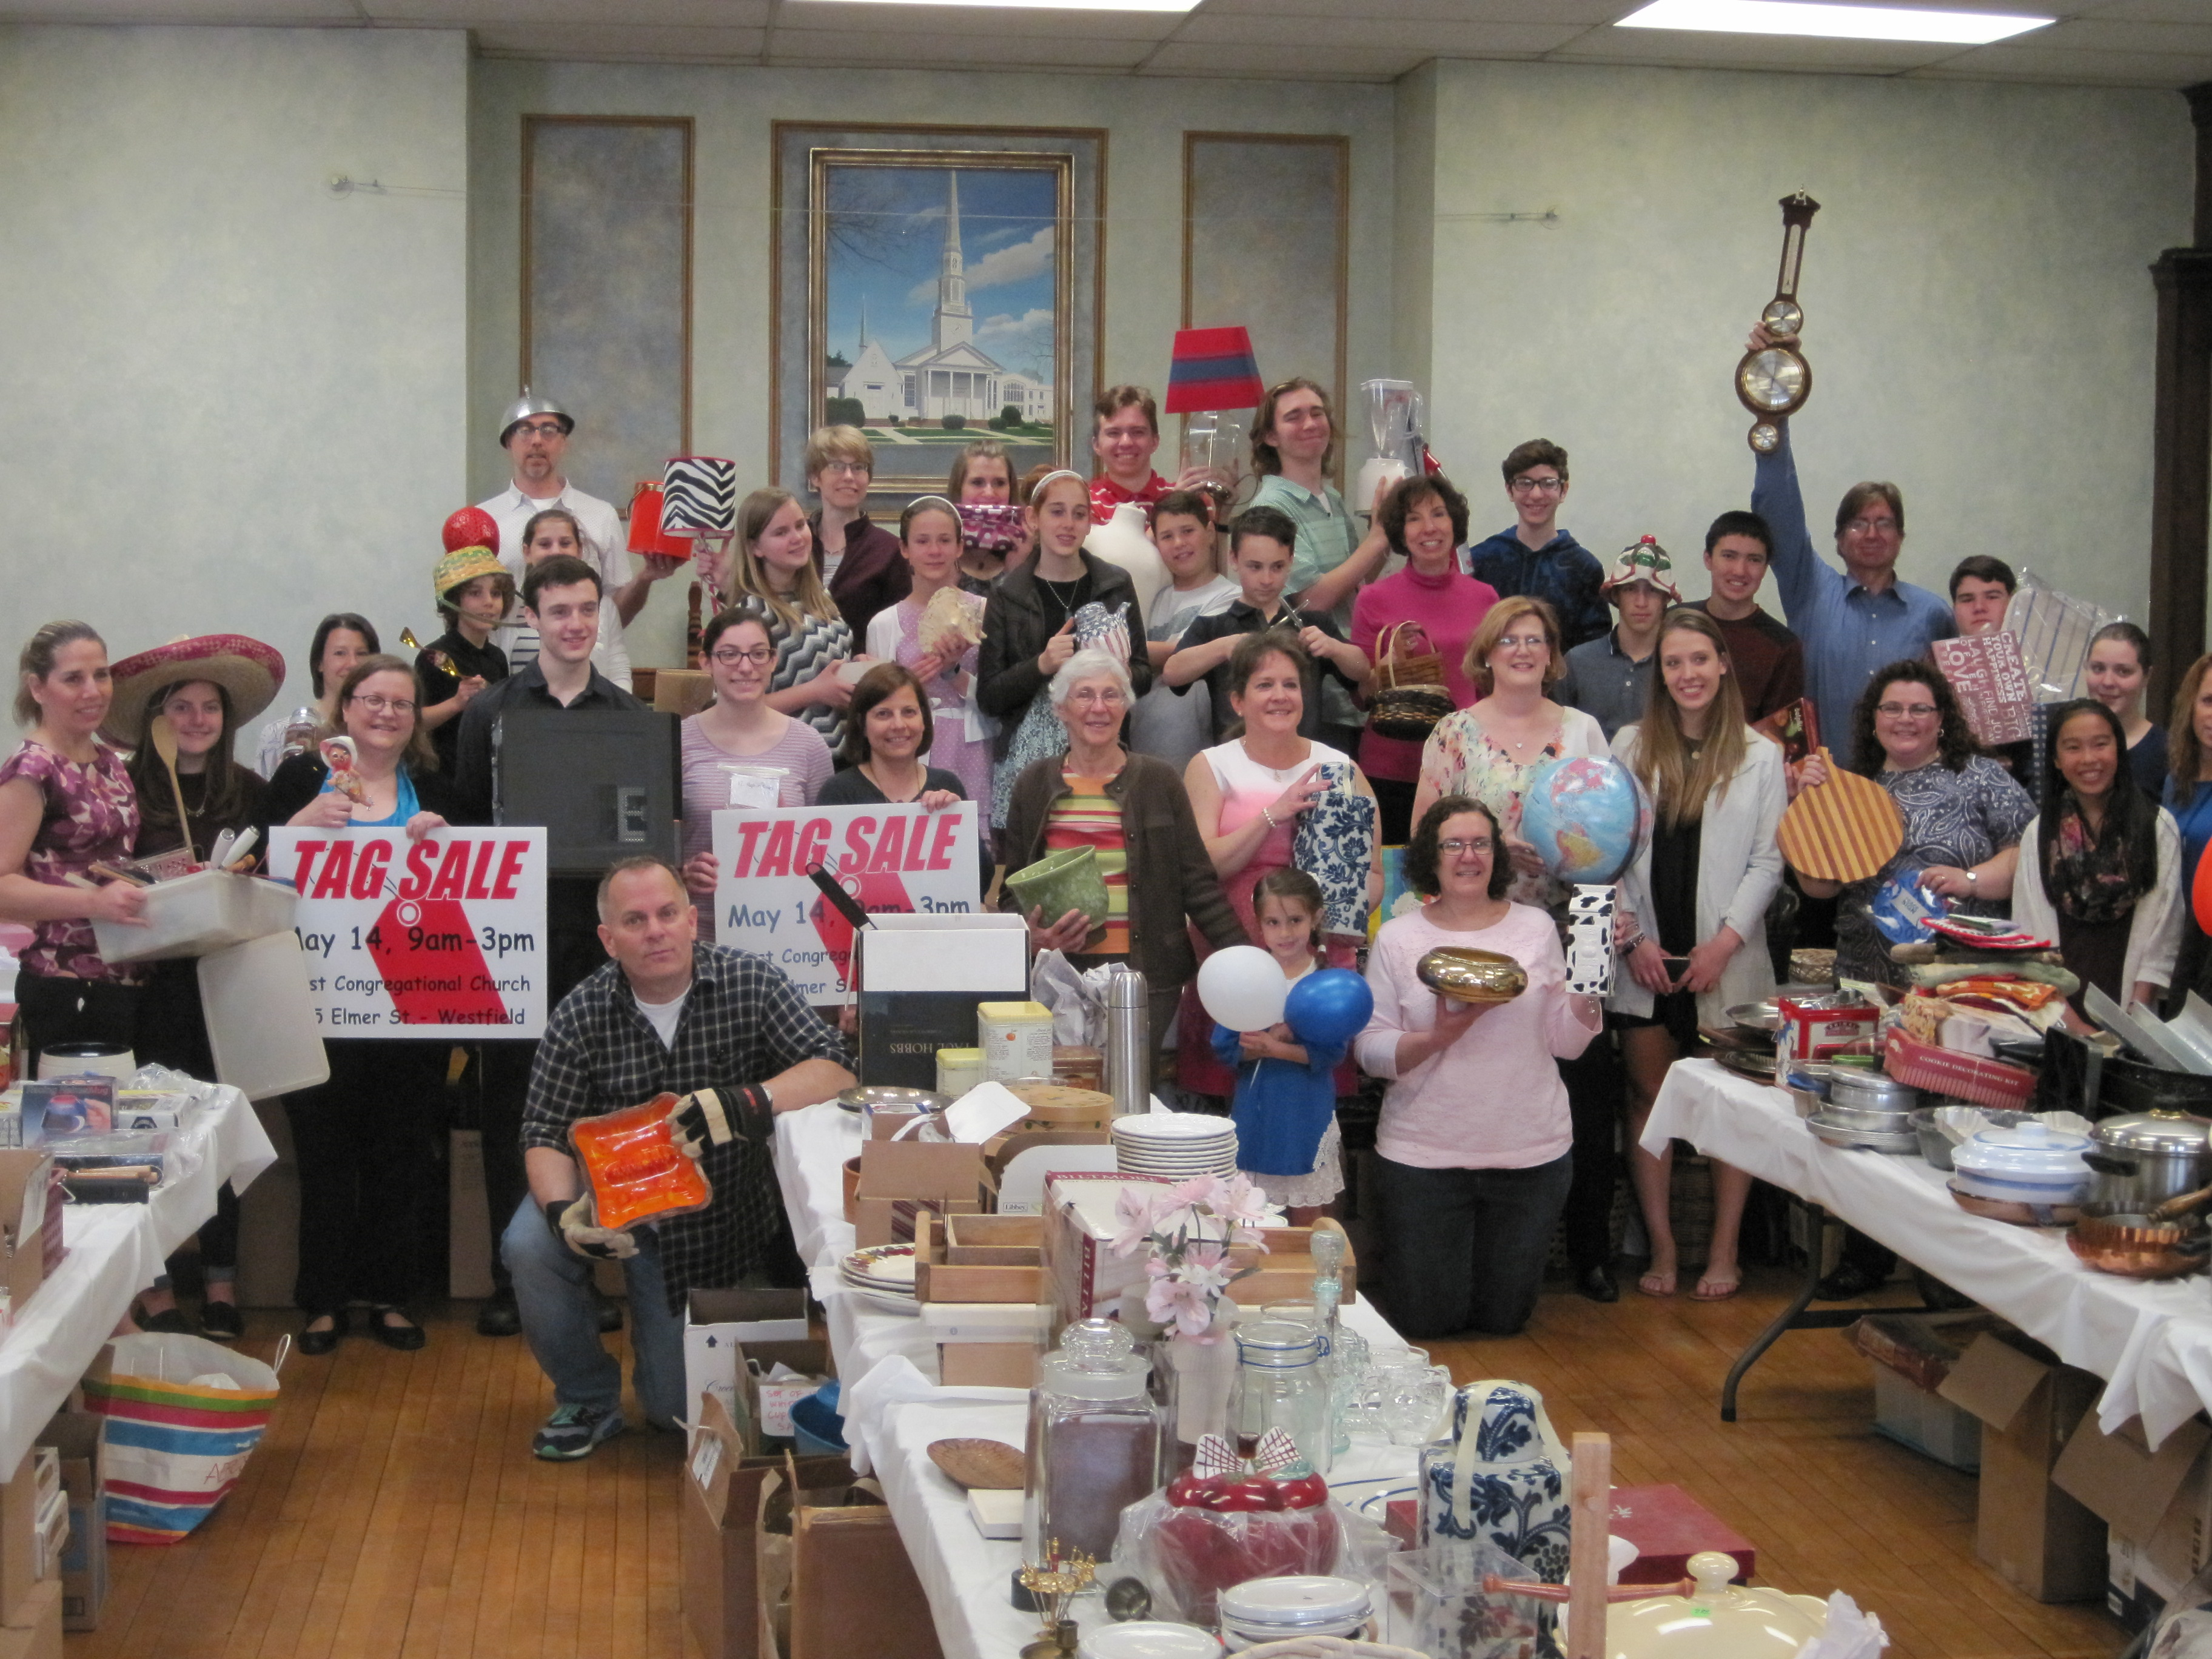 Final Tag Sale at First Congregational Church of Westfield